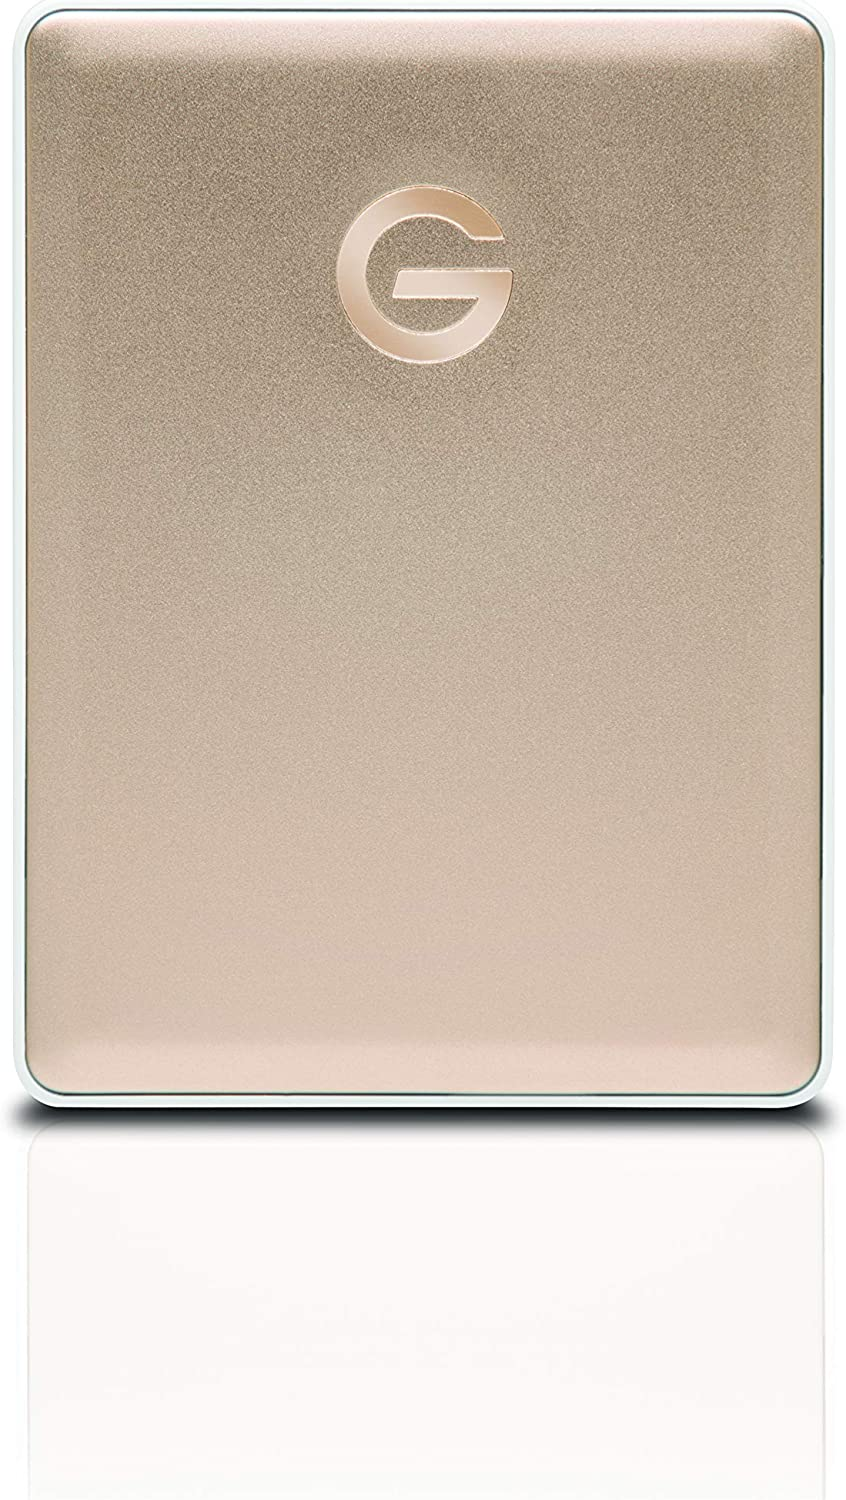 G-Technology 2TB G-DRIVE Mobile USB-C (USB 3.1 Gen 1) Portable External Hard Drive, Gold - 0G10340